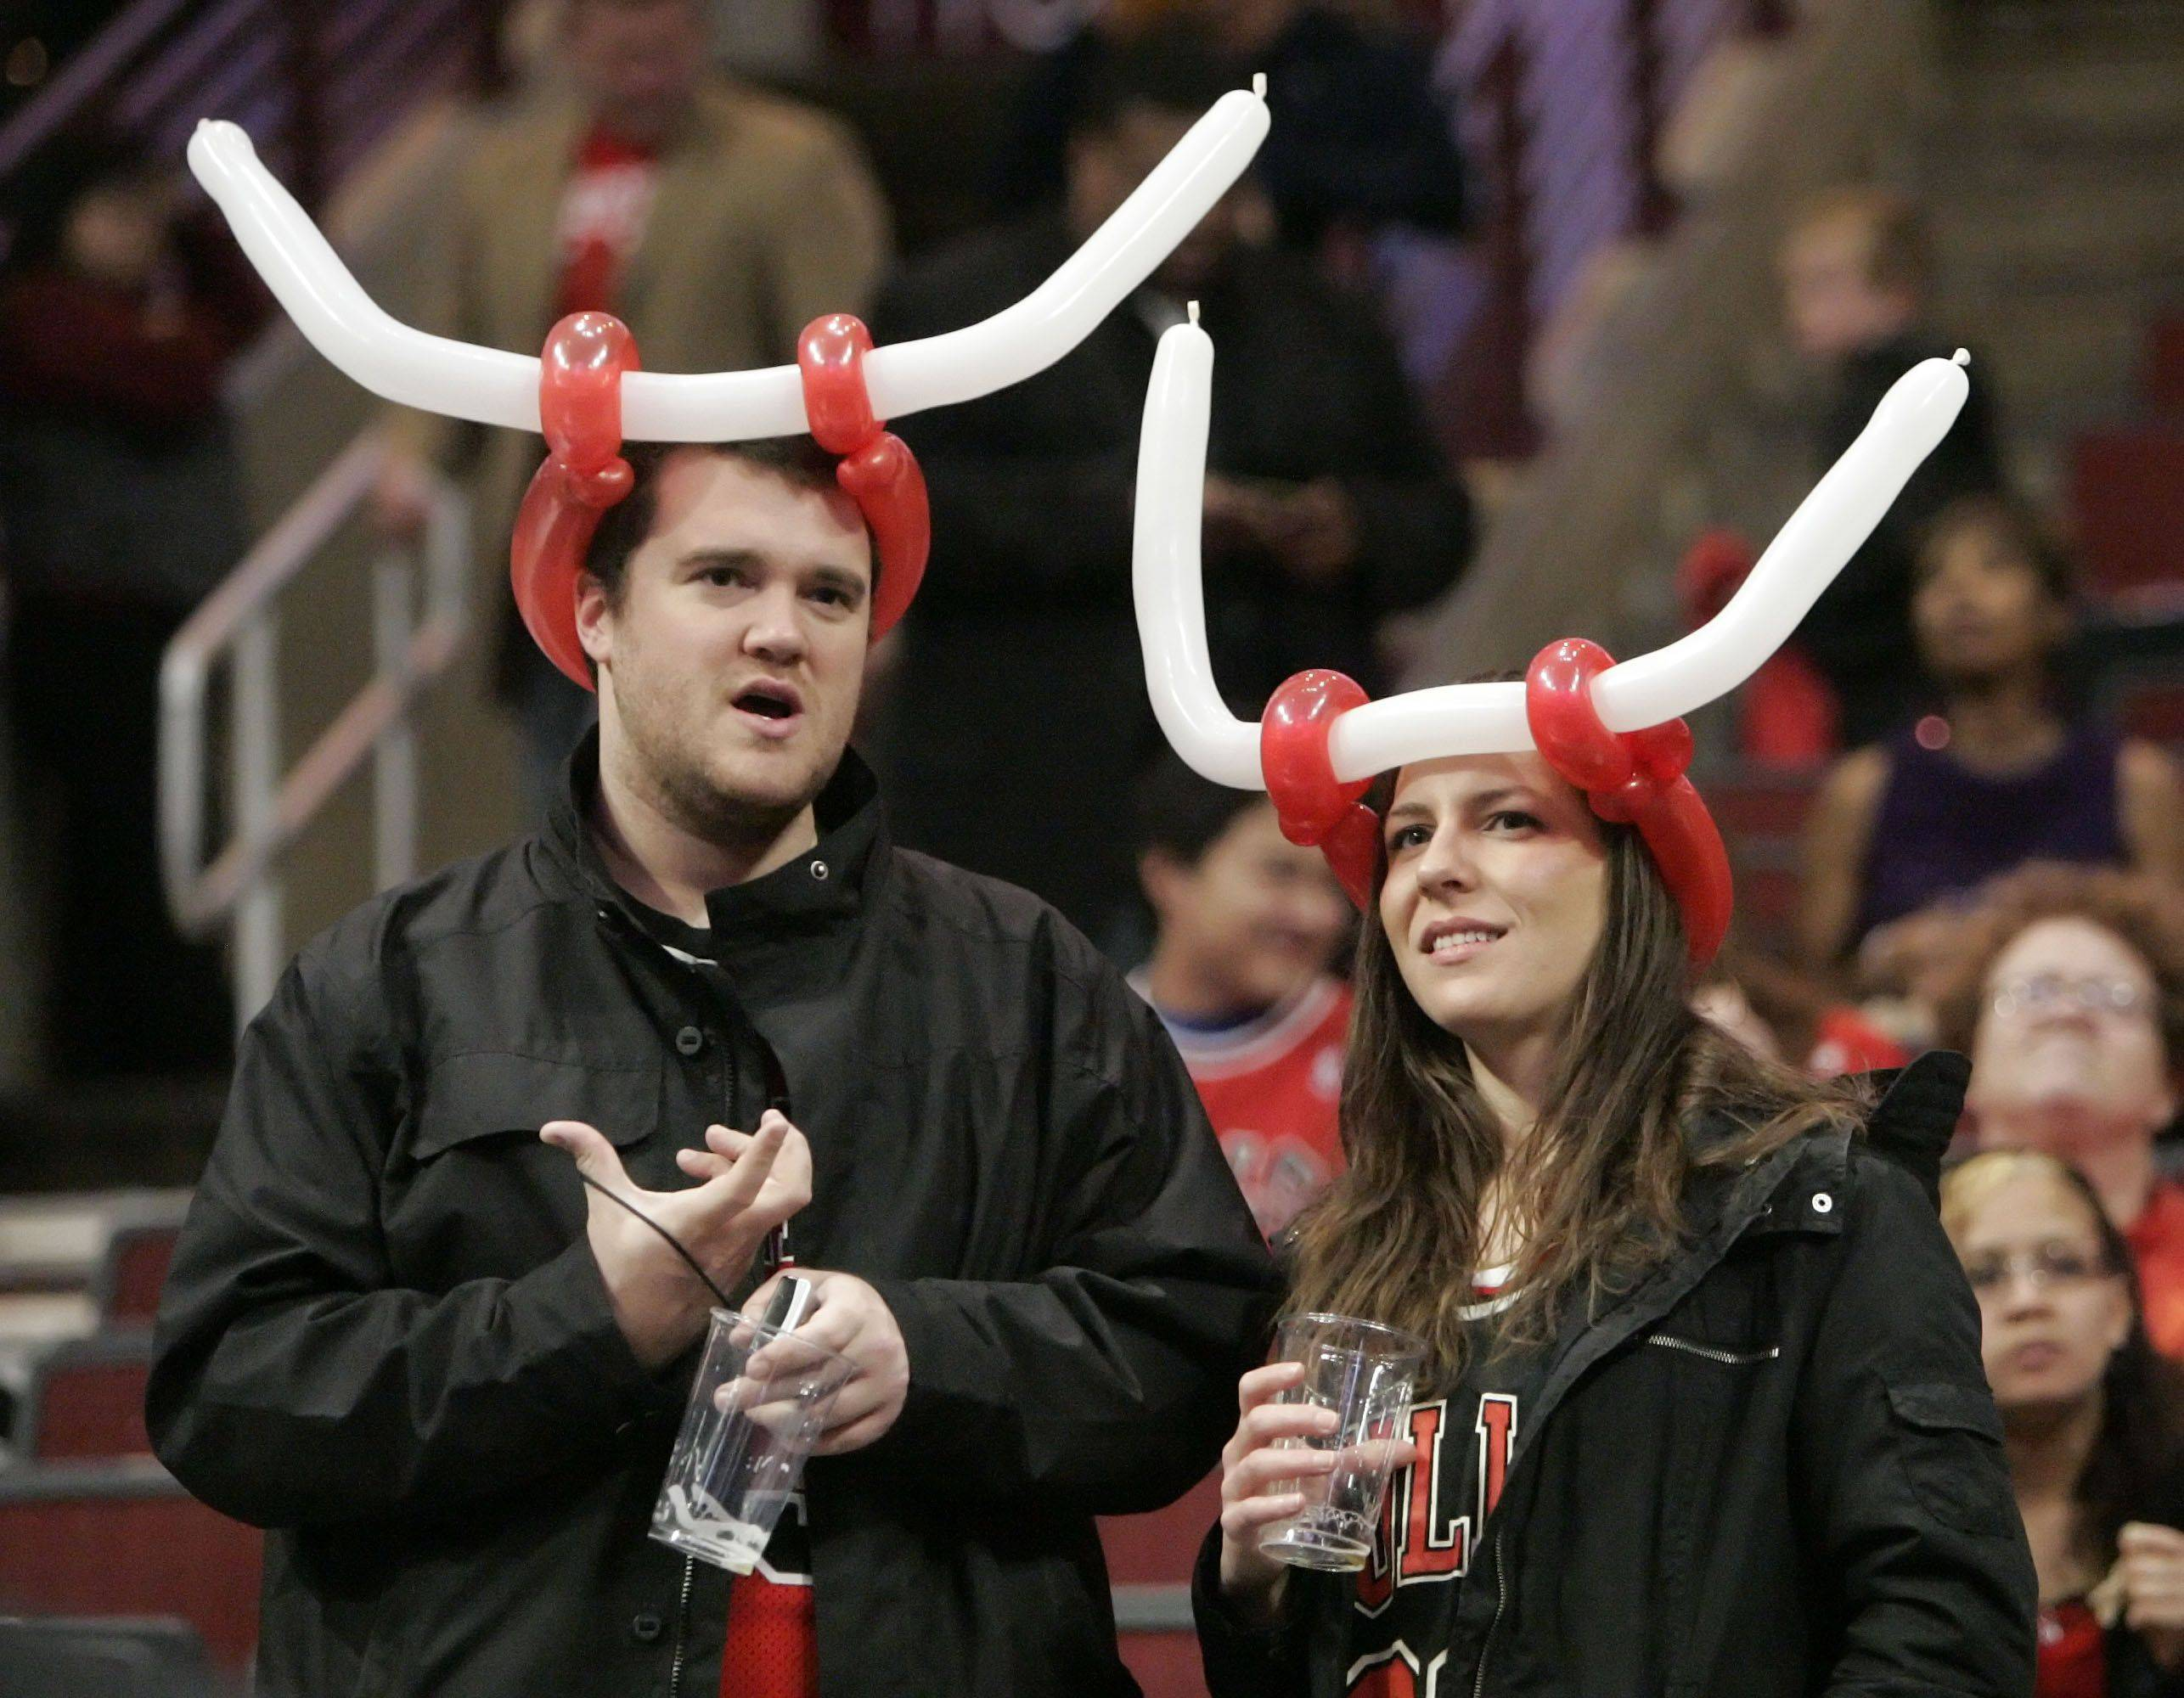 Drew and Chrissy Flintosh of Miami, Florida donned Bulls balloon hats as they hang out before game one of the Eastern Conference finals.